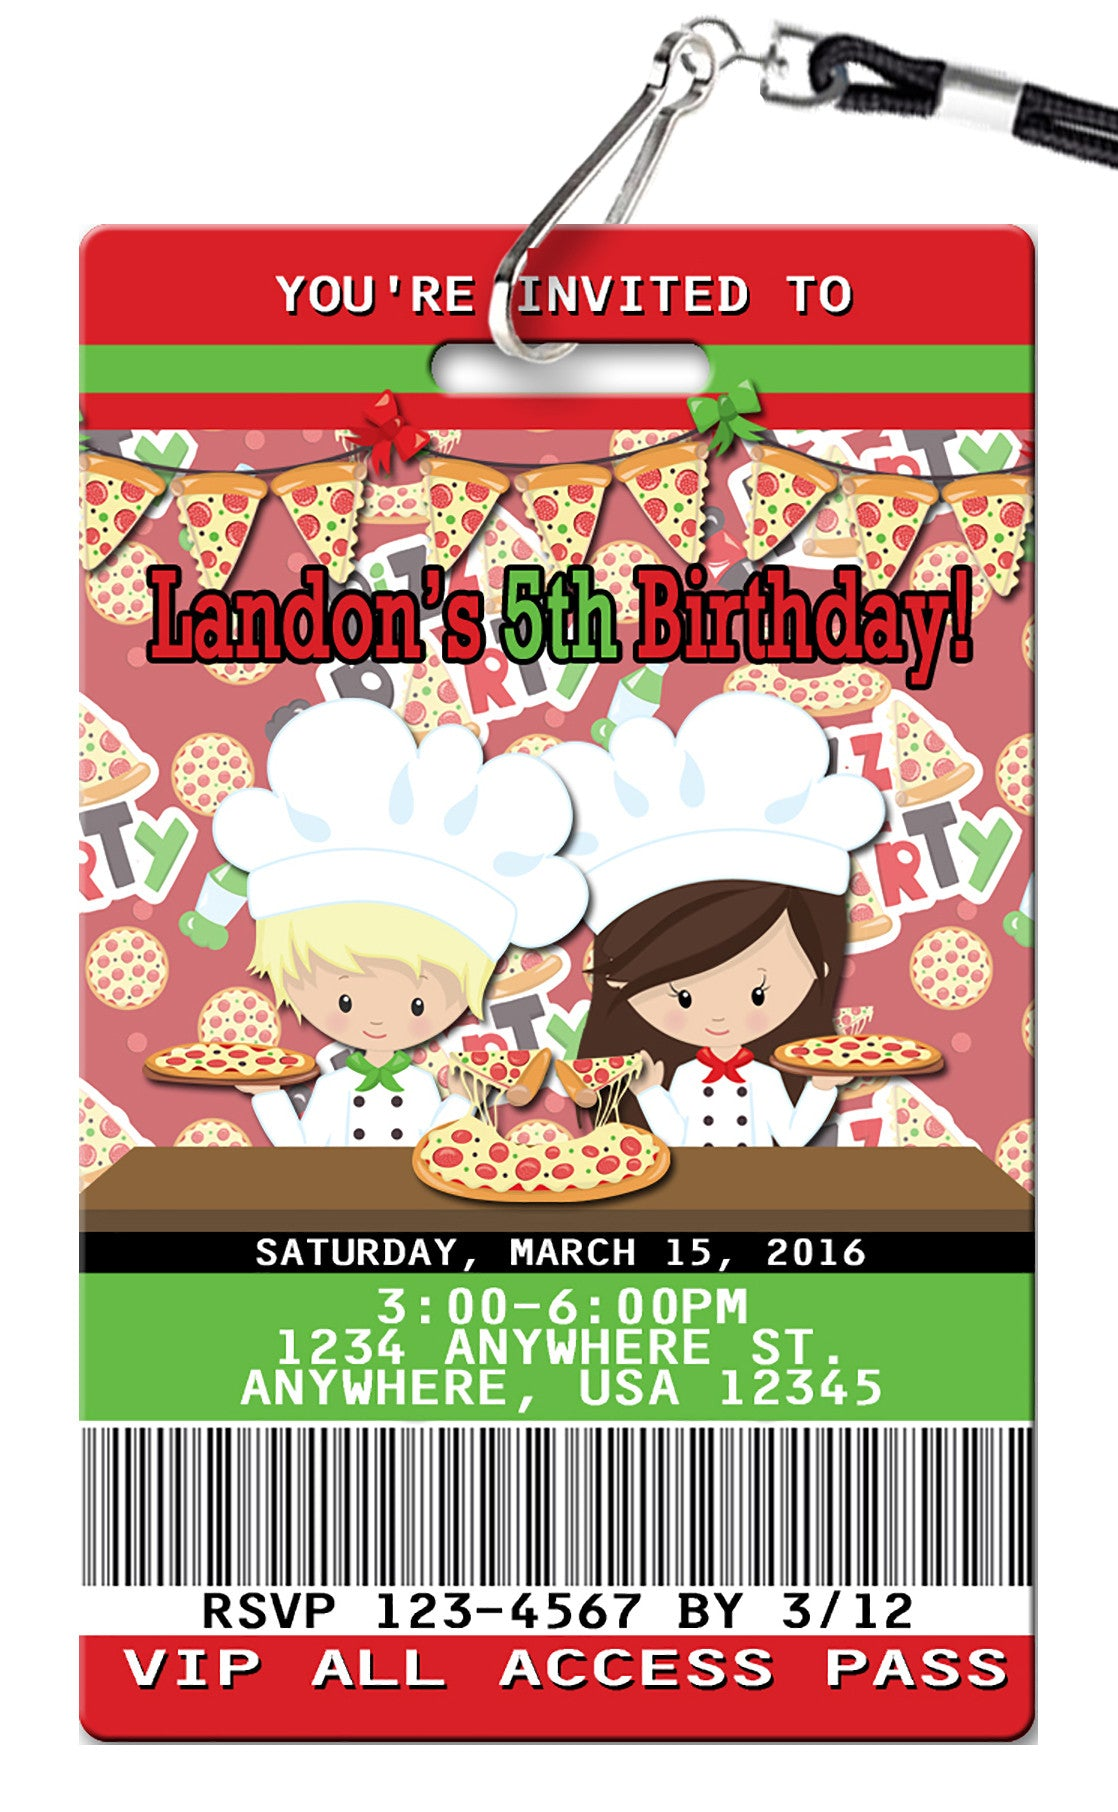 Pizza party birthday invitations pvc invites vip birthday pizza party birthday invitation stopboris Image collections